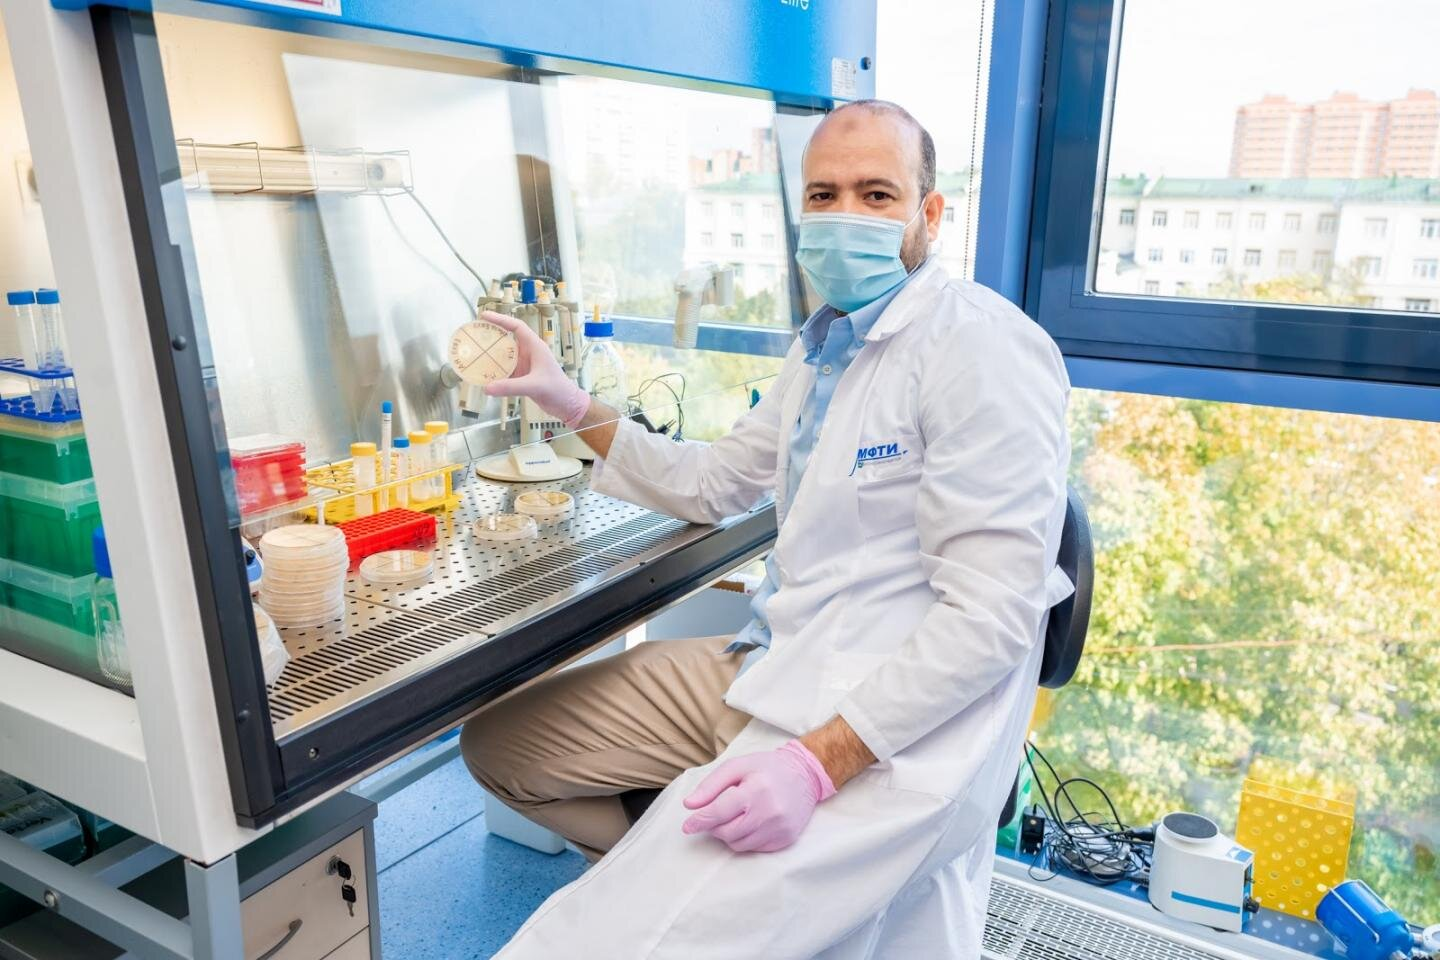 Fly larvae extract will replace antibiotics in fighting plant pathogens